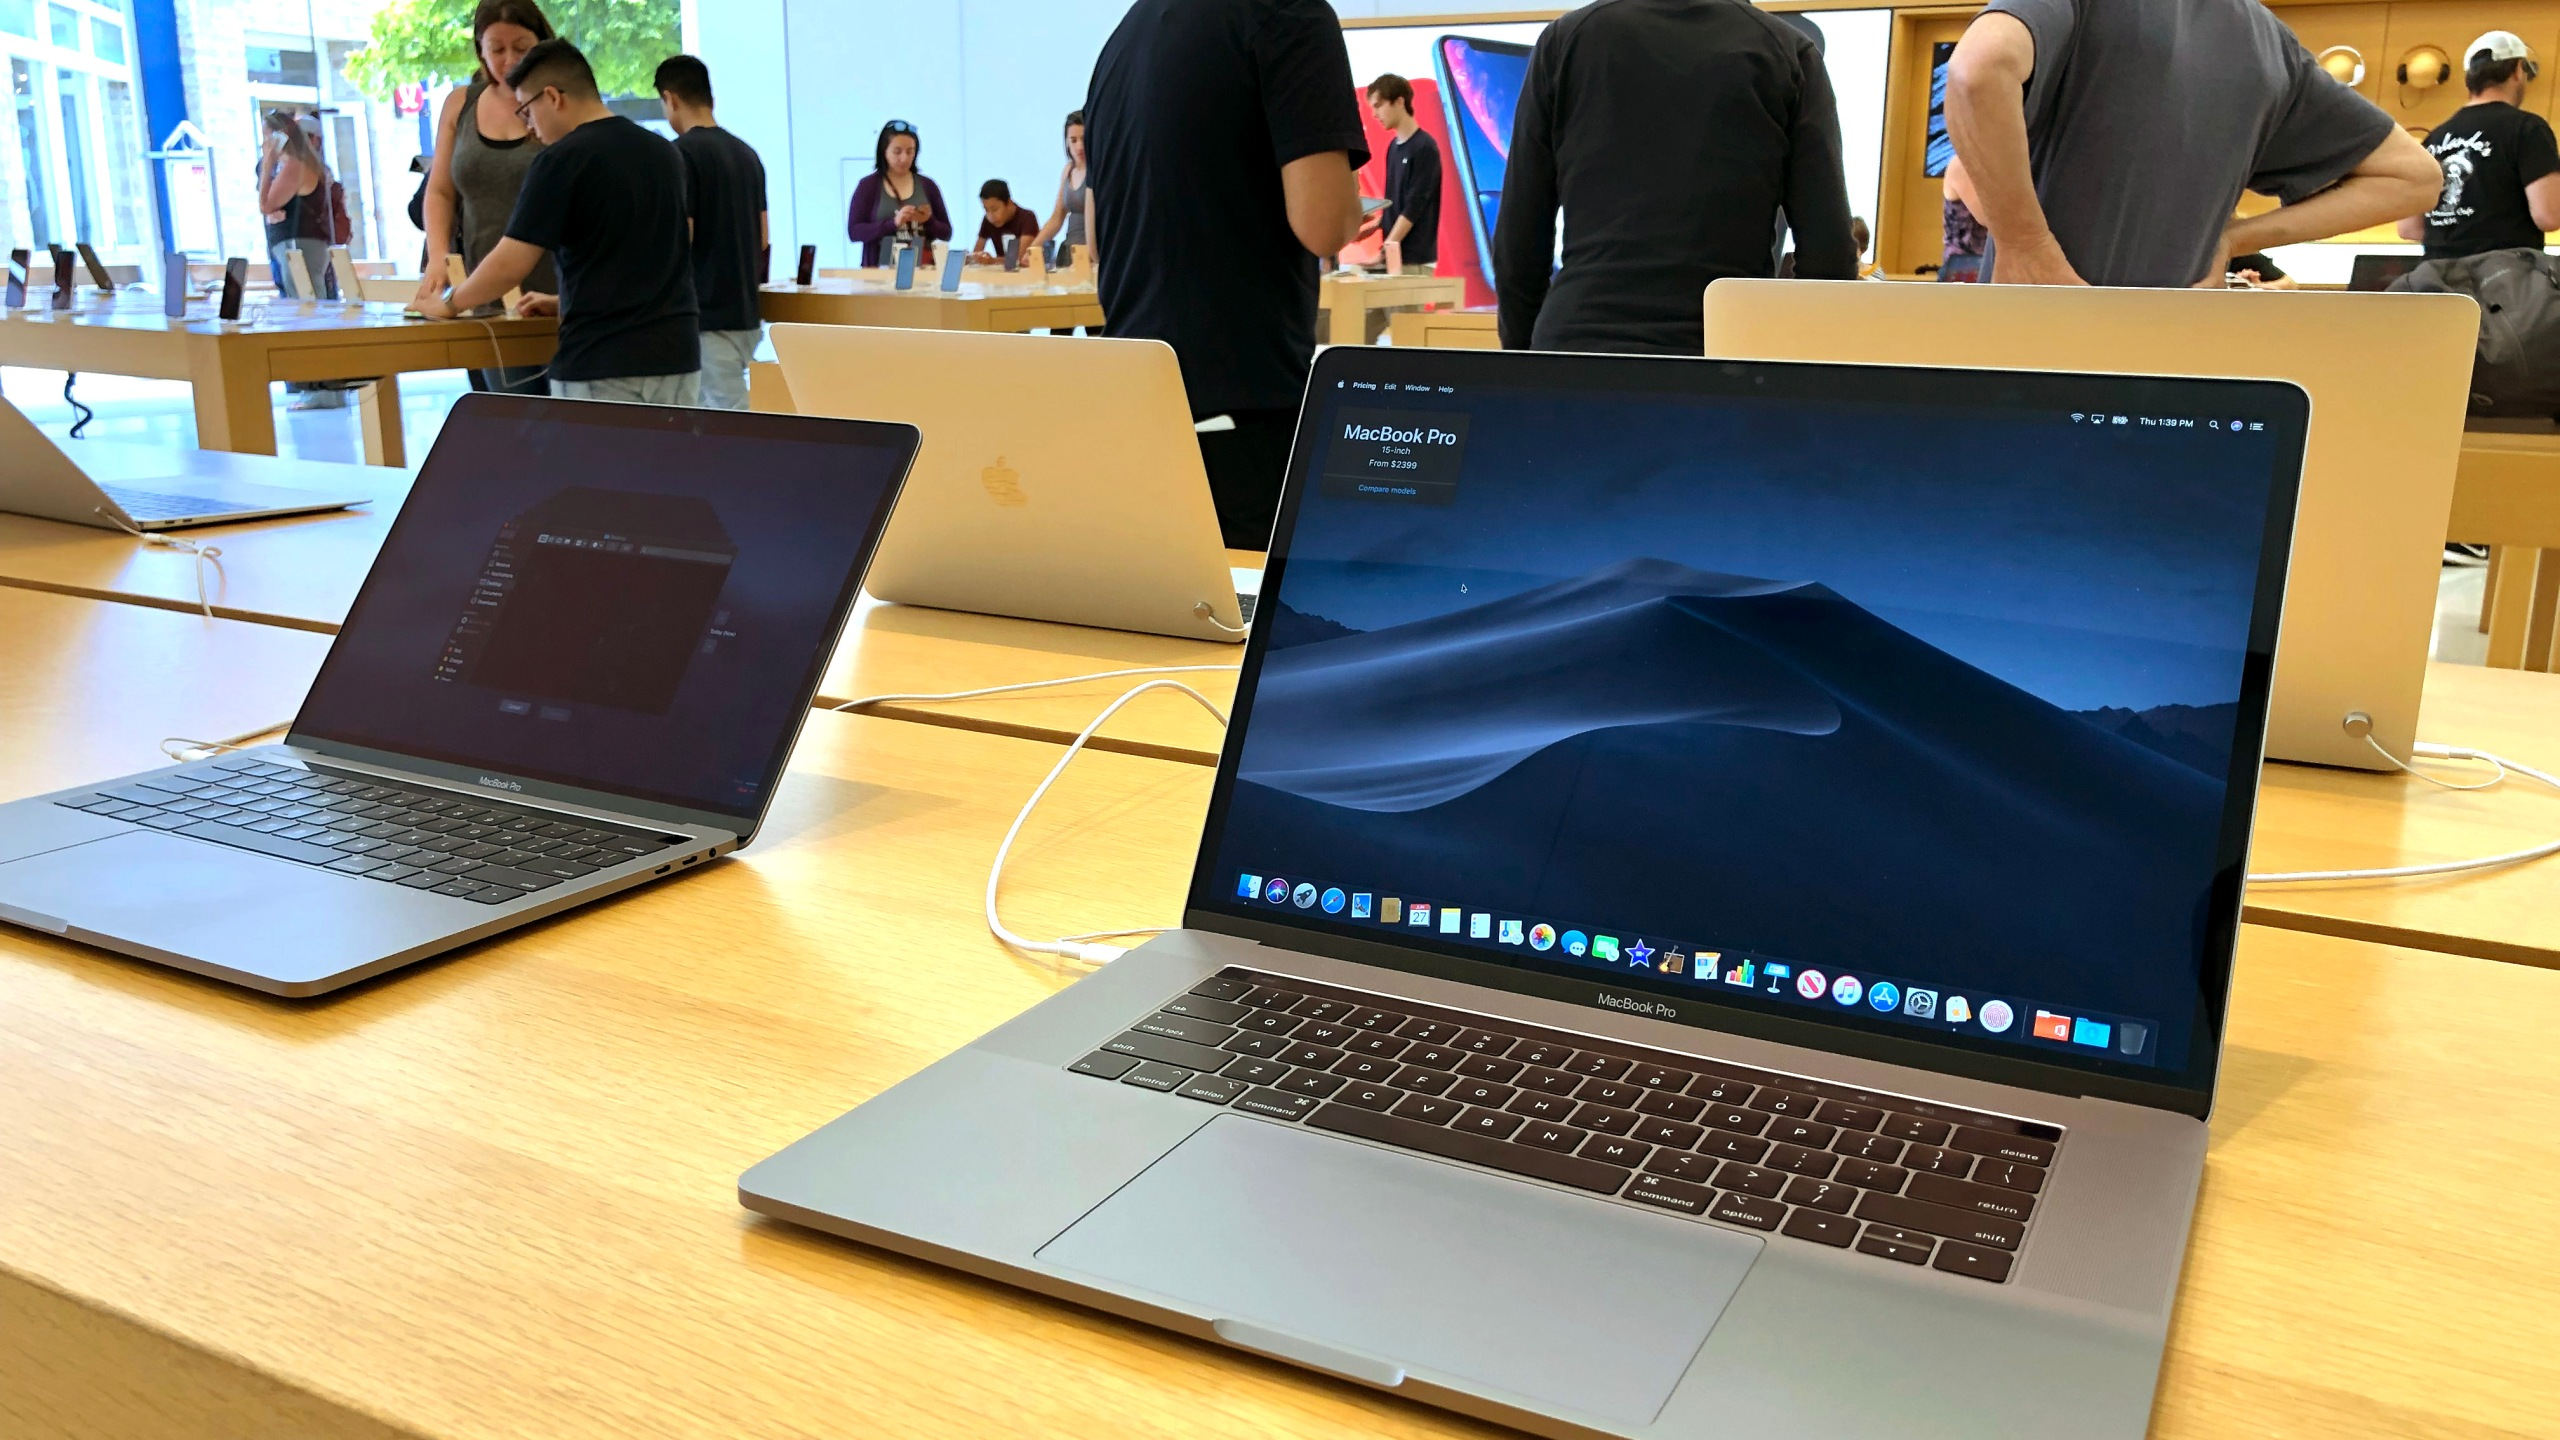 A MacBook Pro laptop is displayed at an Apple Store on June 27, 2019, in Corte Madera. (Credit: Justin Sullivan/Getty Images)